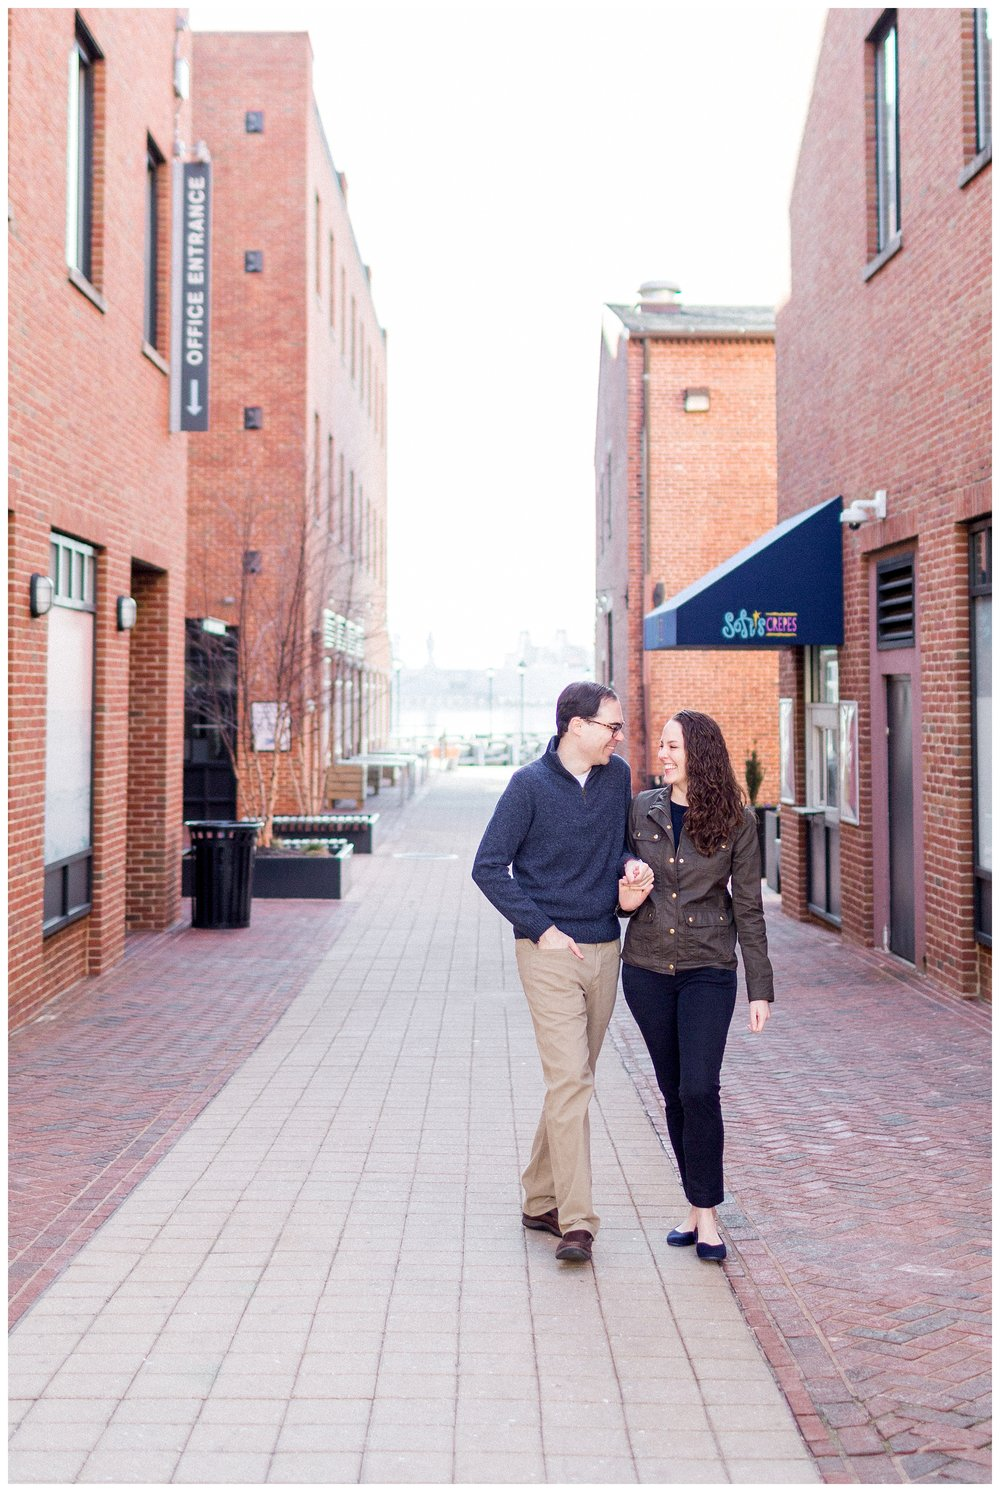 Baltimore Engagement Pictures | Maryland Wedding Photographer Kir Tuben_0046.jpg